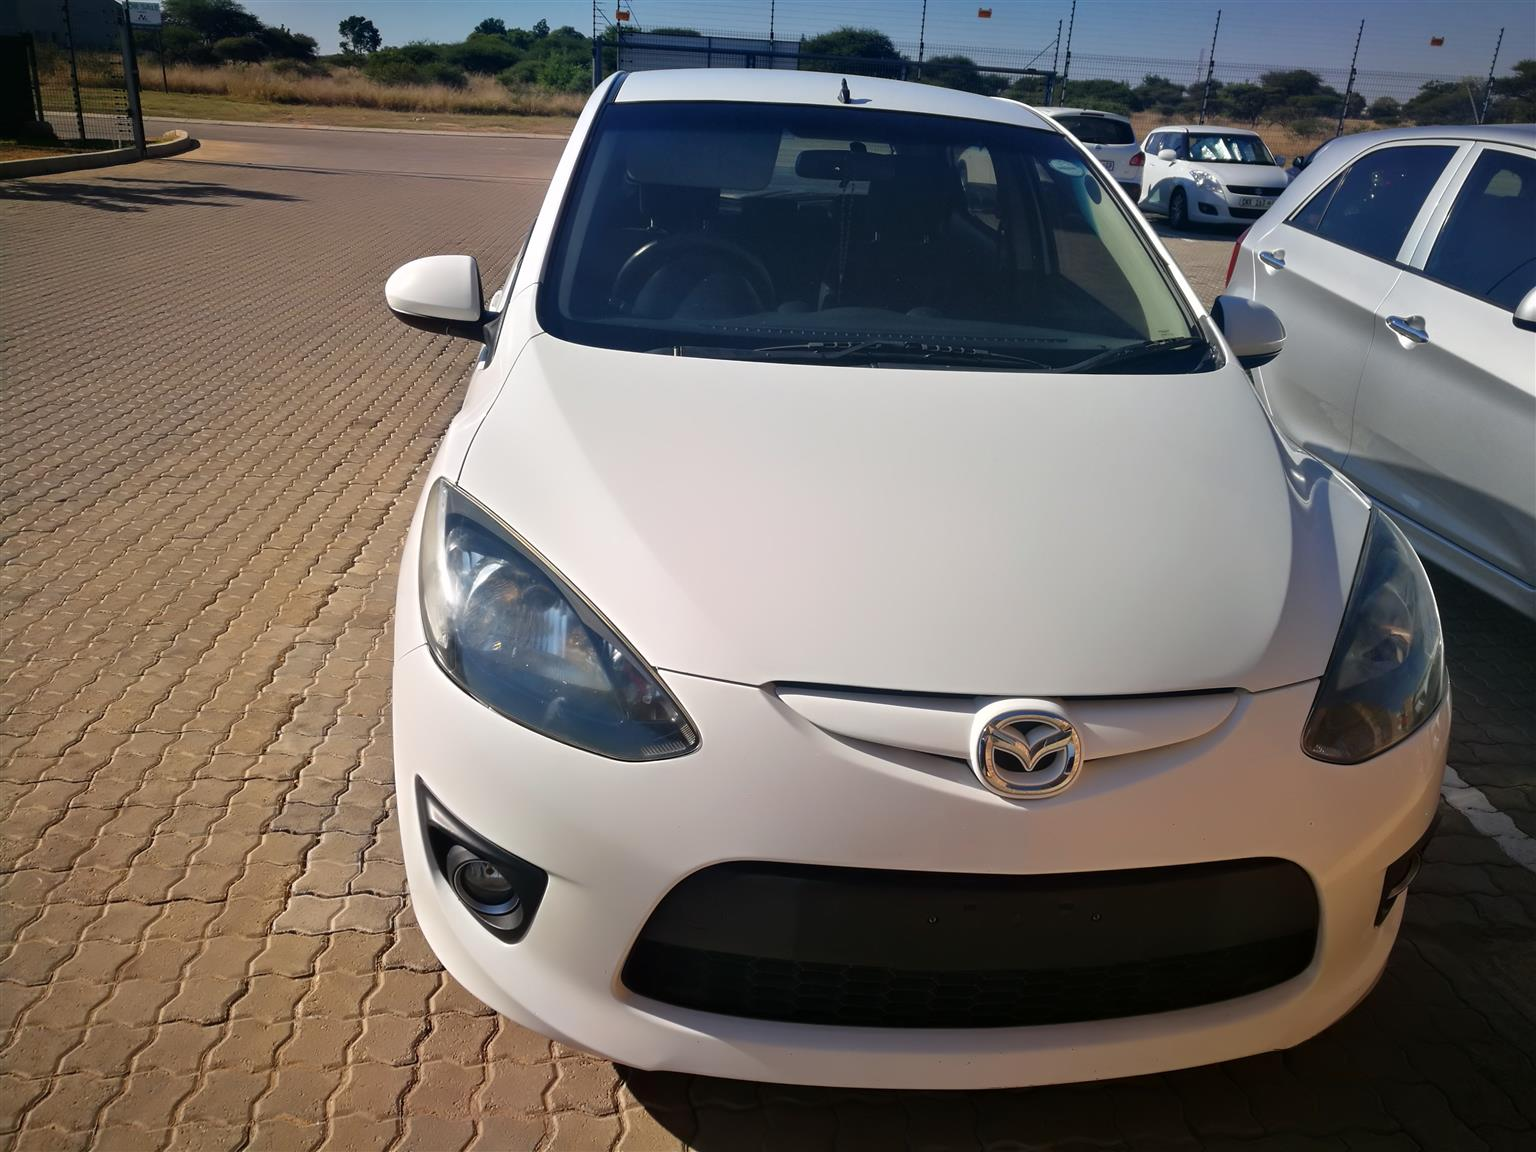 2008 Mazda 2 Mazda hatch 1.3 Dynamic